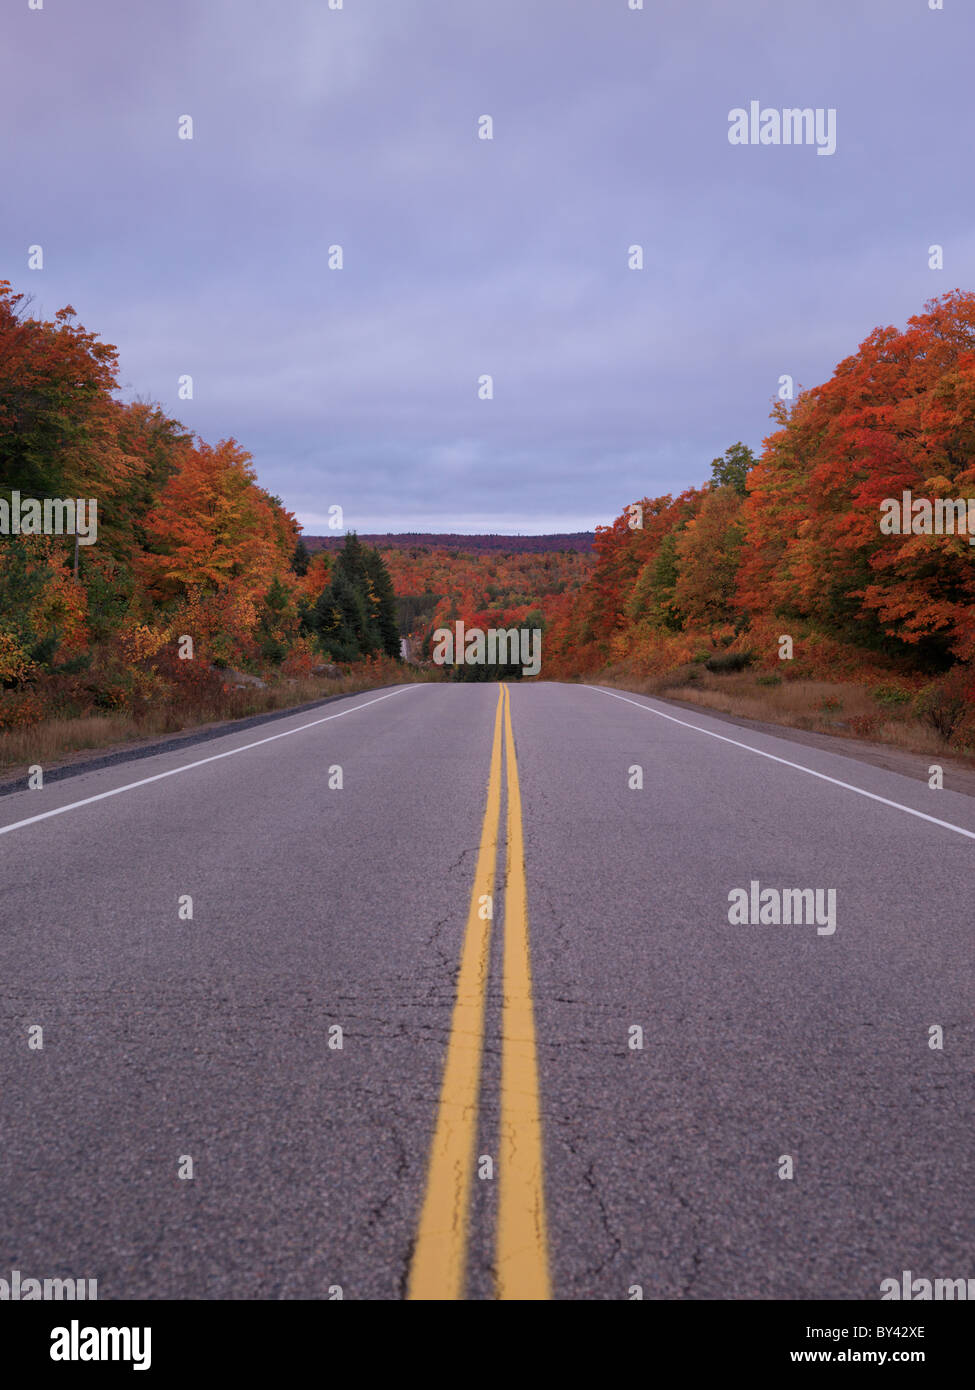 Highway going through beautiful colorful fall nature scenery. Algonquin Provincial Park, Ontario, Canada. - Stock Image